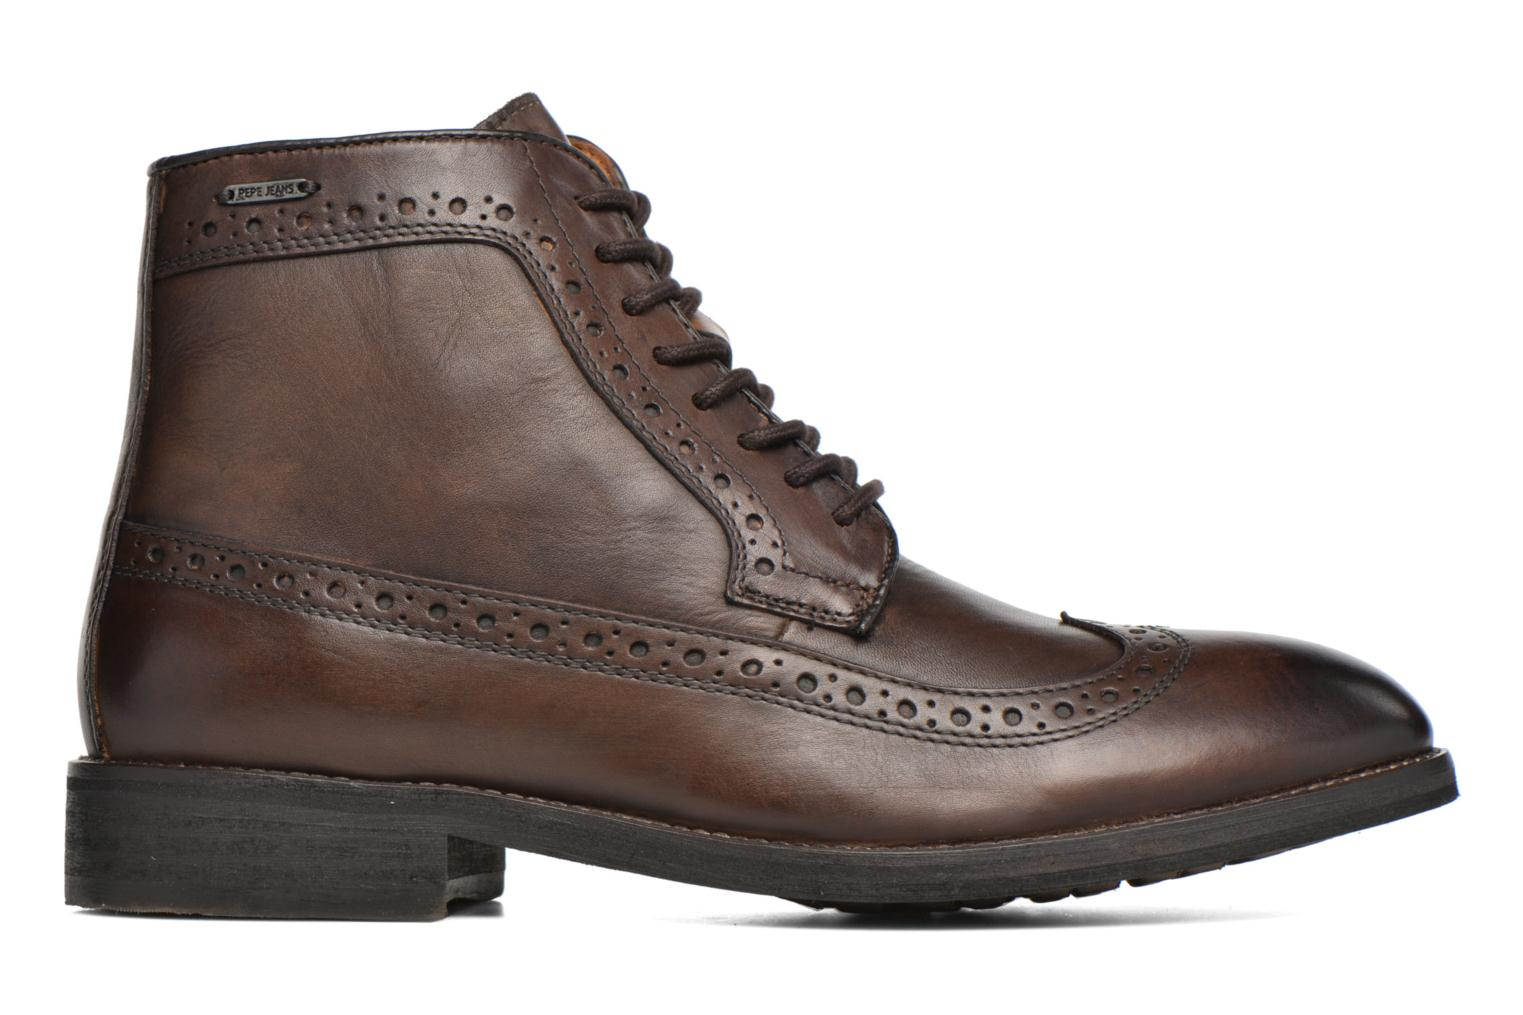 Bottines et boots Pepe jeans Hackney Wing Tip Boot Marron vue derrière